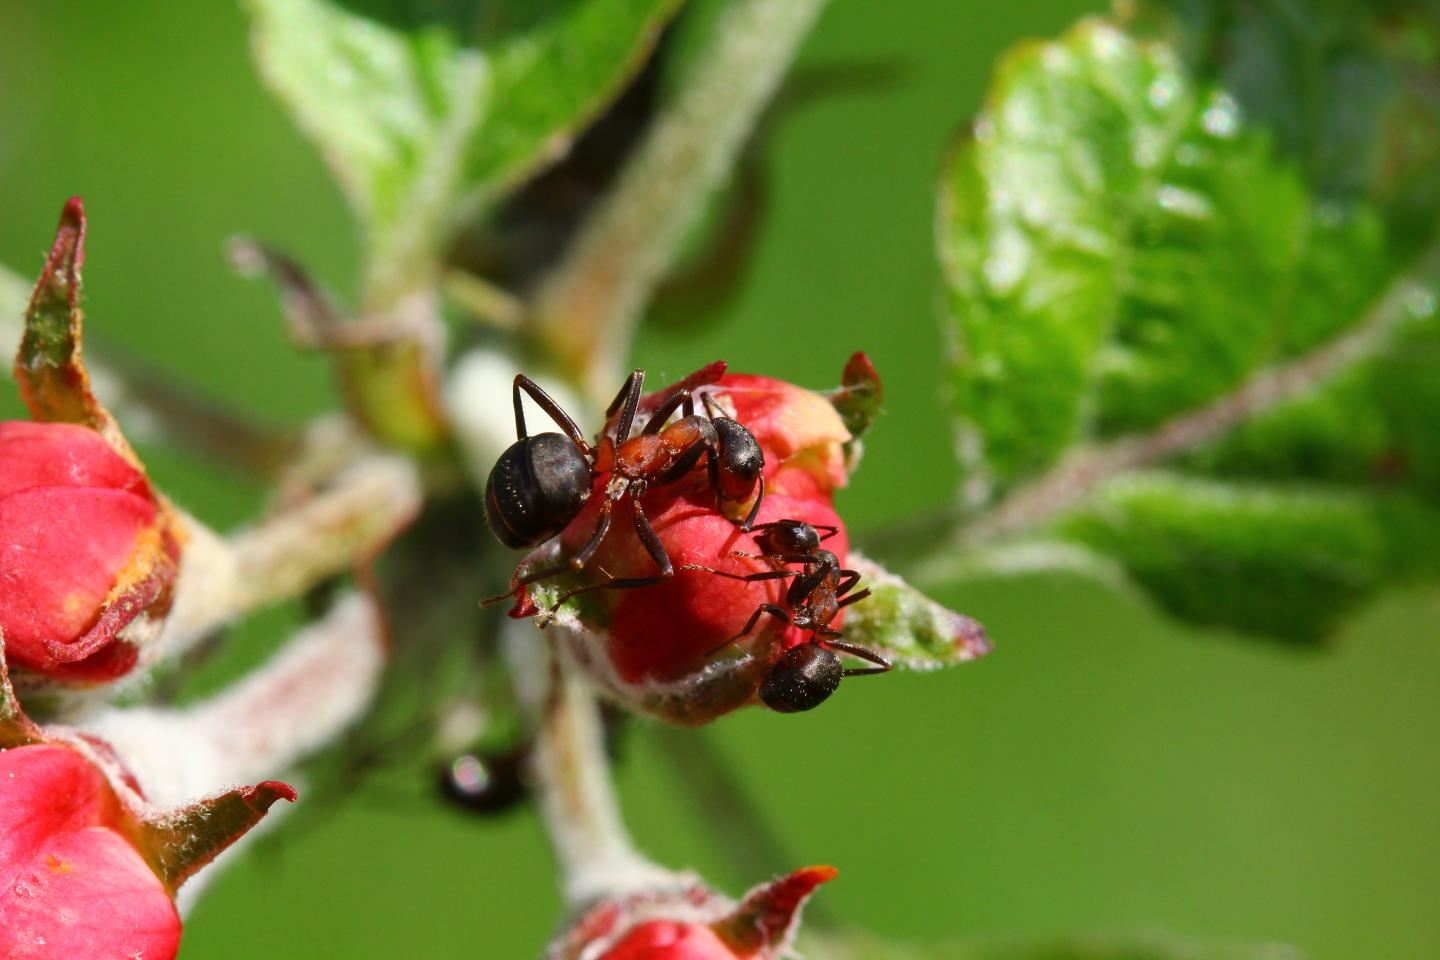 Ants fight plant diseases